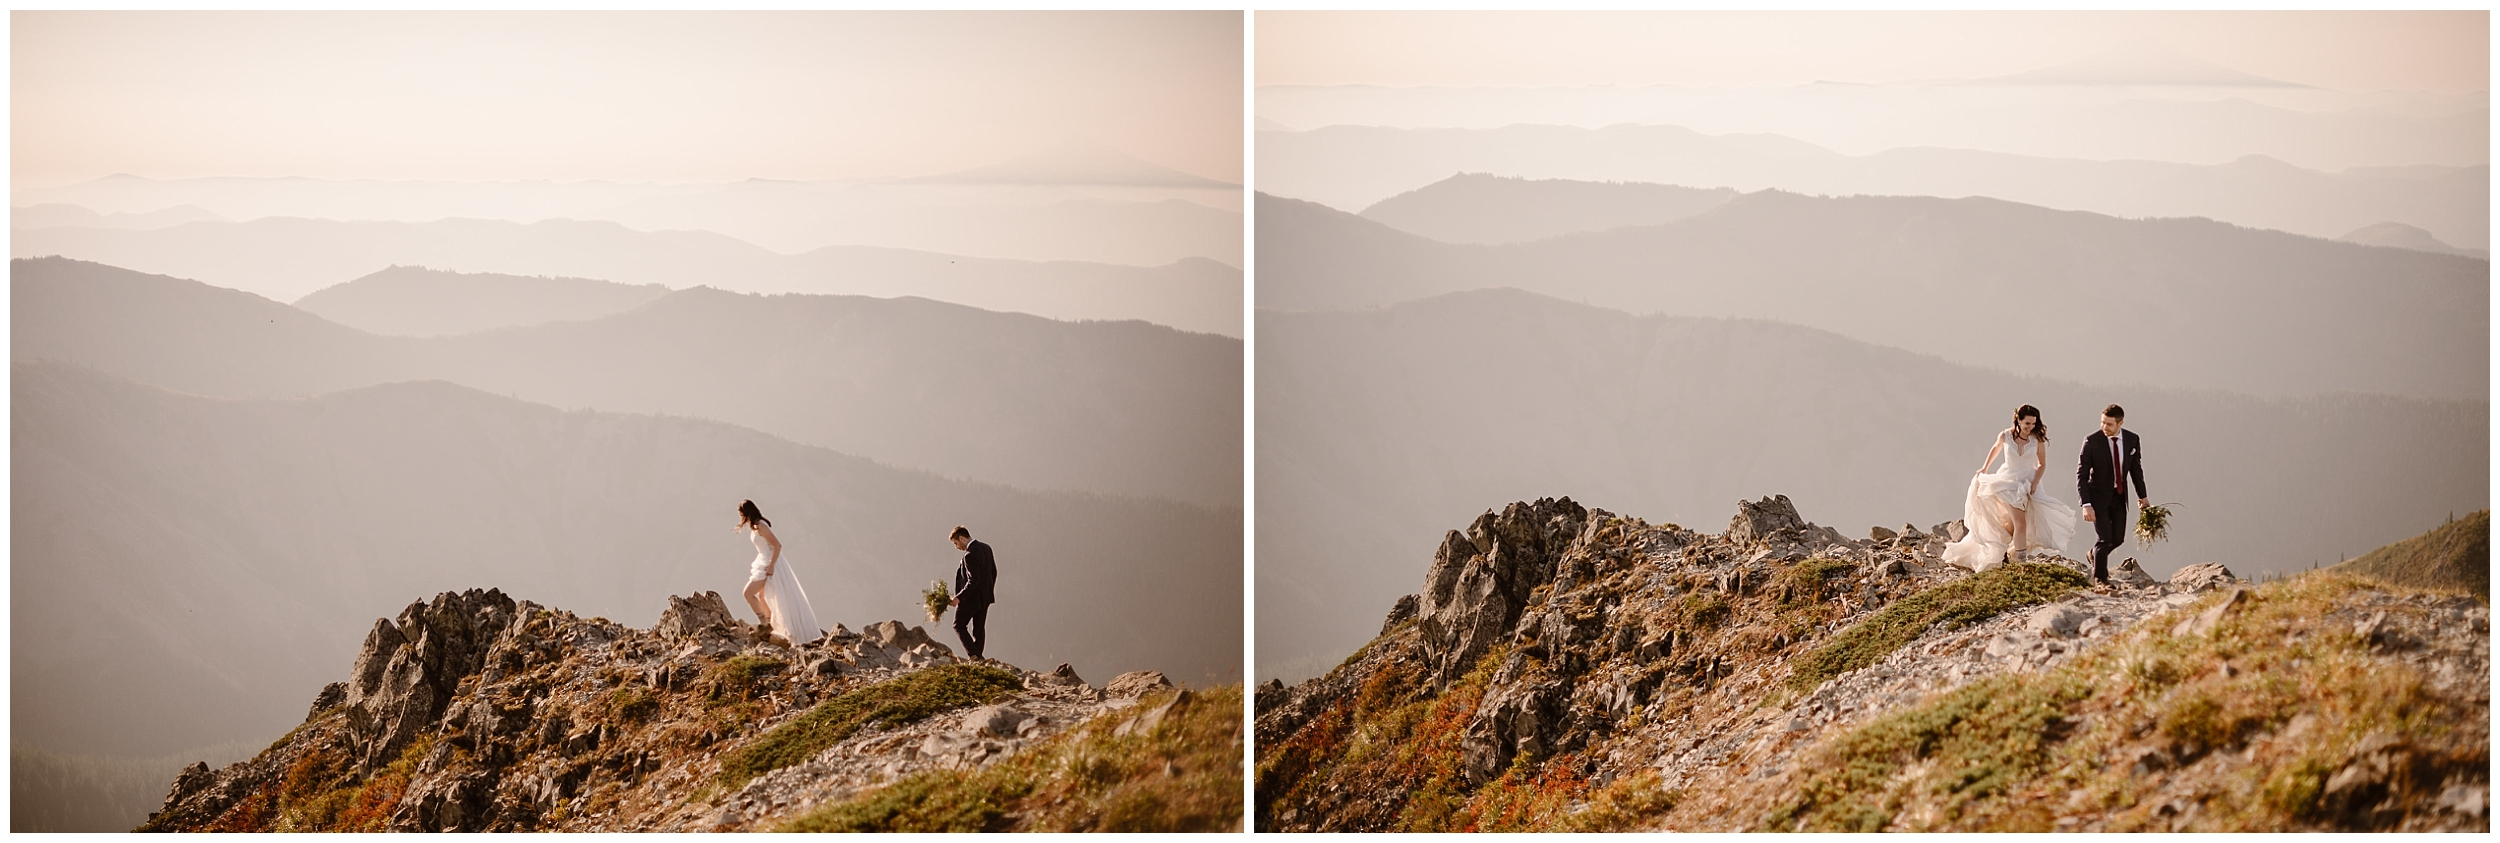 In the distance, Lauryn and David can be seen hiking up to the top of the mountain in these side-by-side elopement photos captured by Adventure Instead